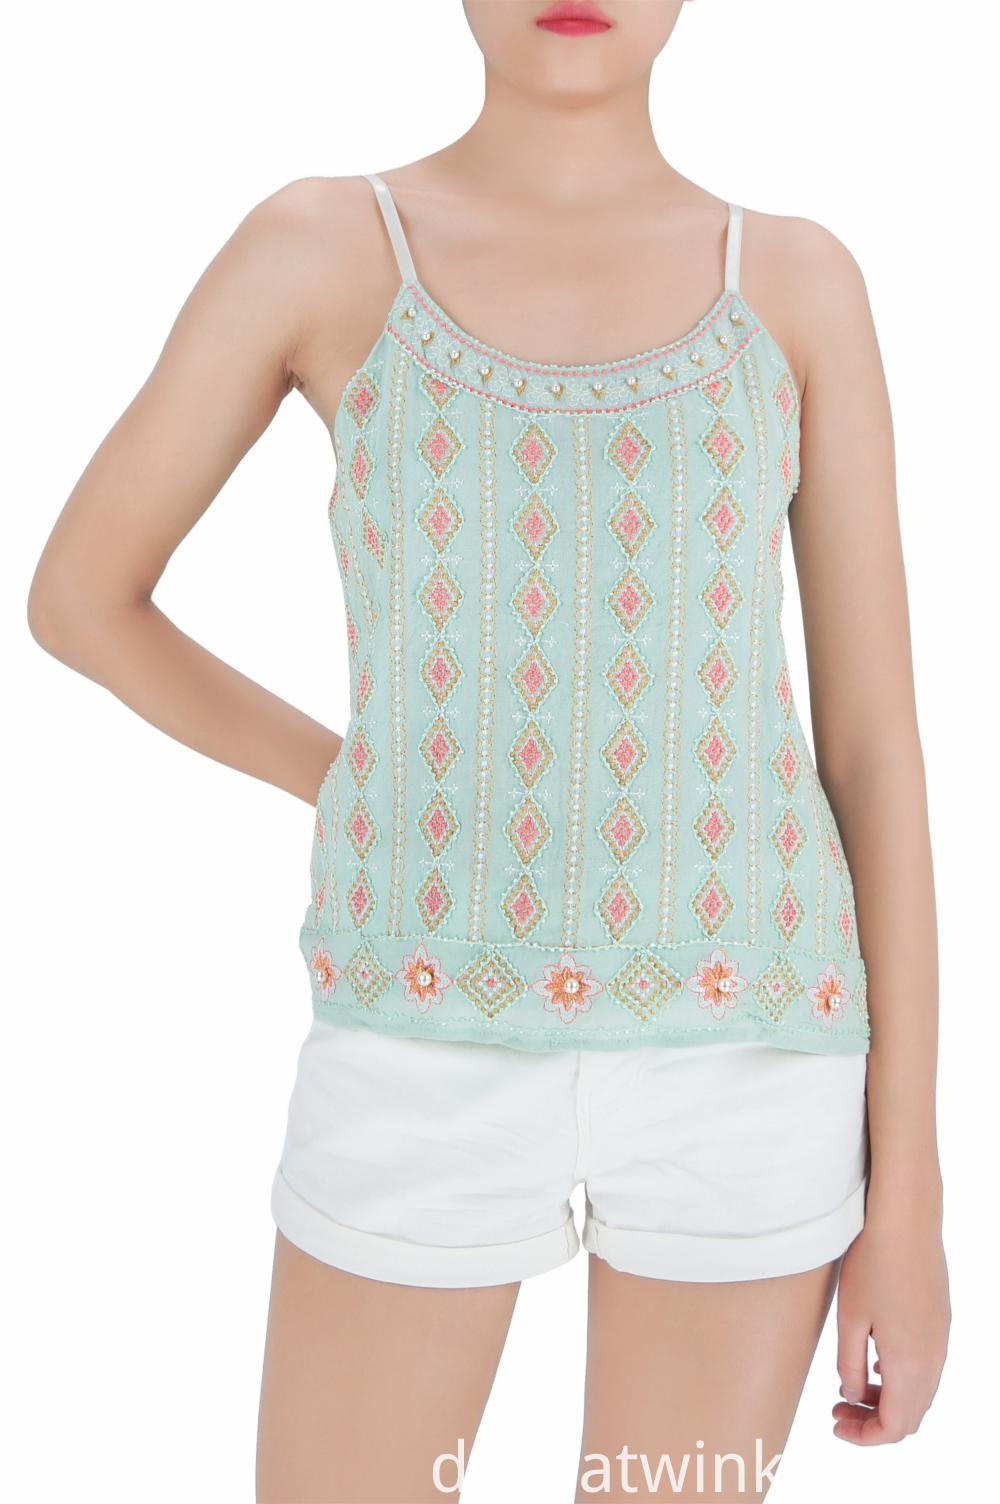 Embroidered Girls Tank Tops